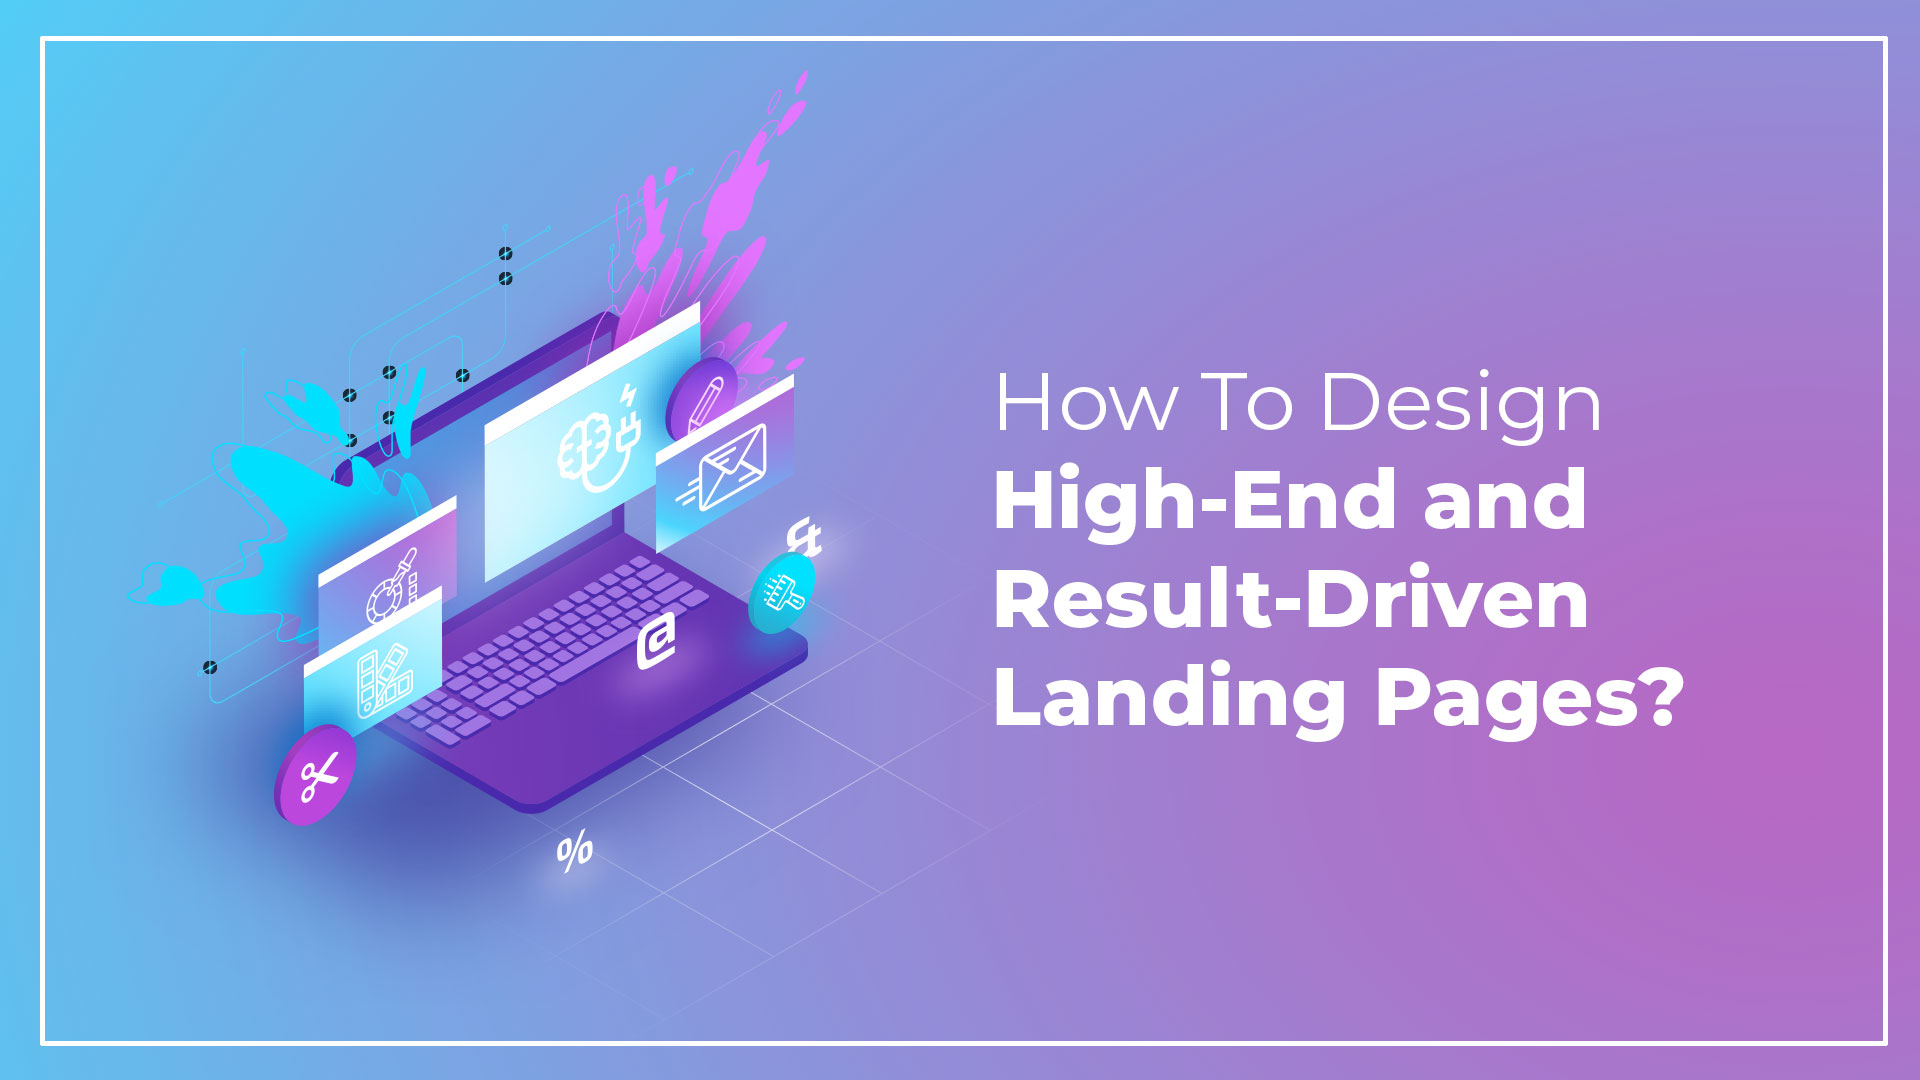 How To Design High-End and Result-Driven Landing Pages